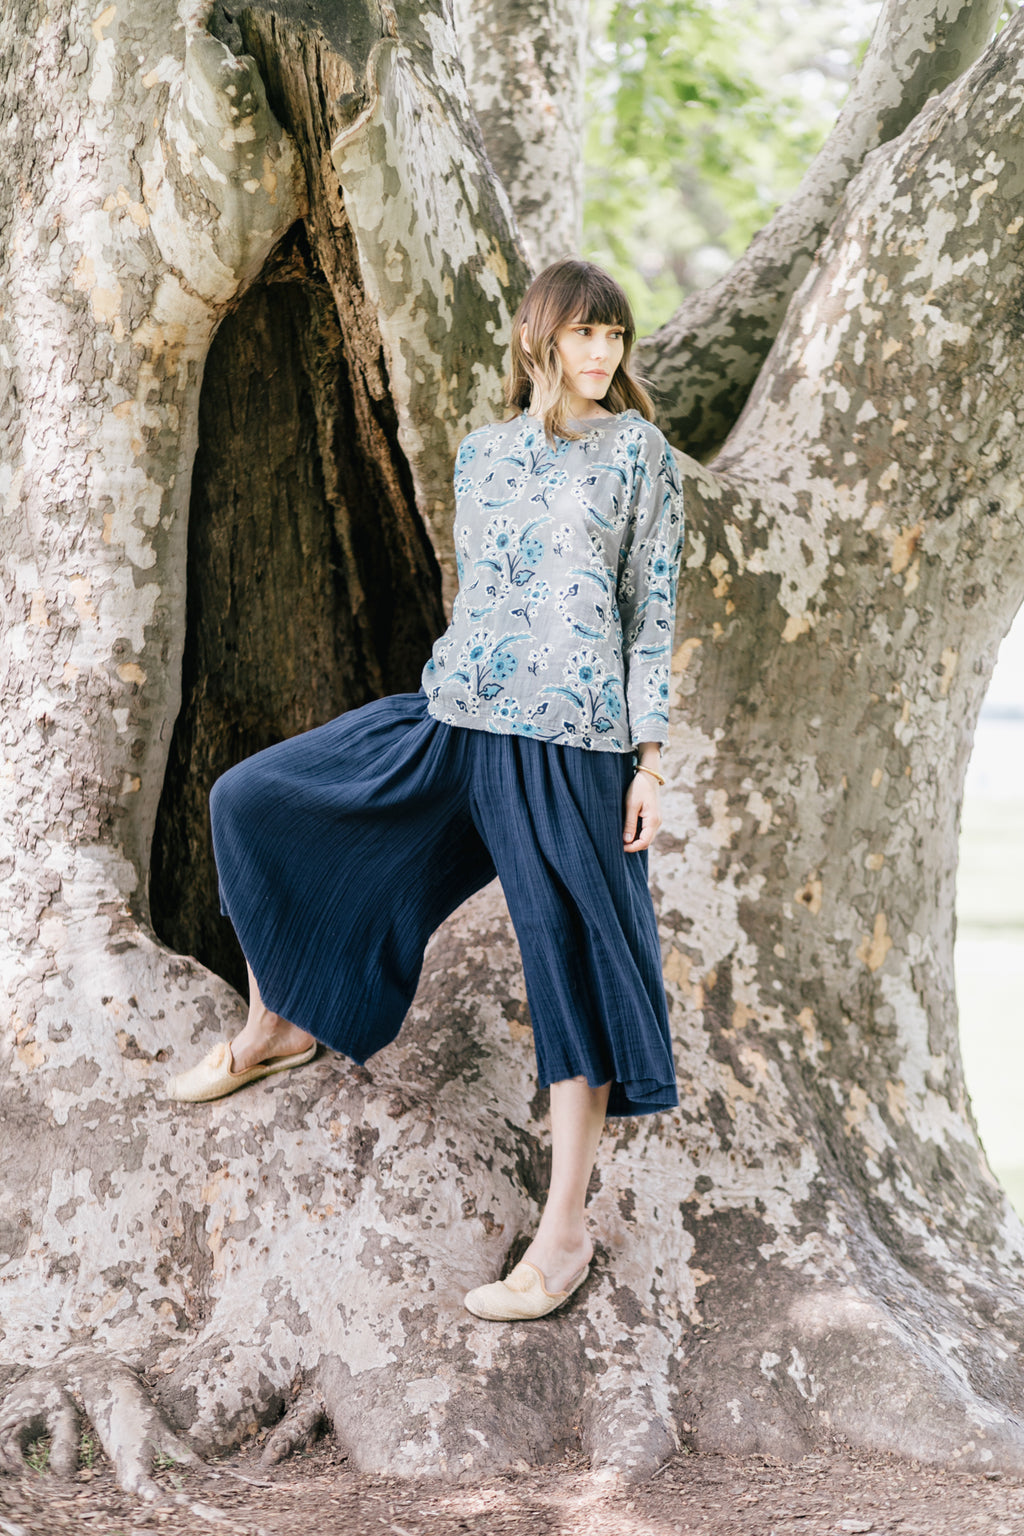 Model wearing an indigo blue floral print top with a high low hem and cotton rolled sleeves paired with wide legged blue palazzo pants.